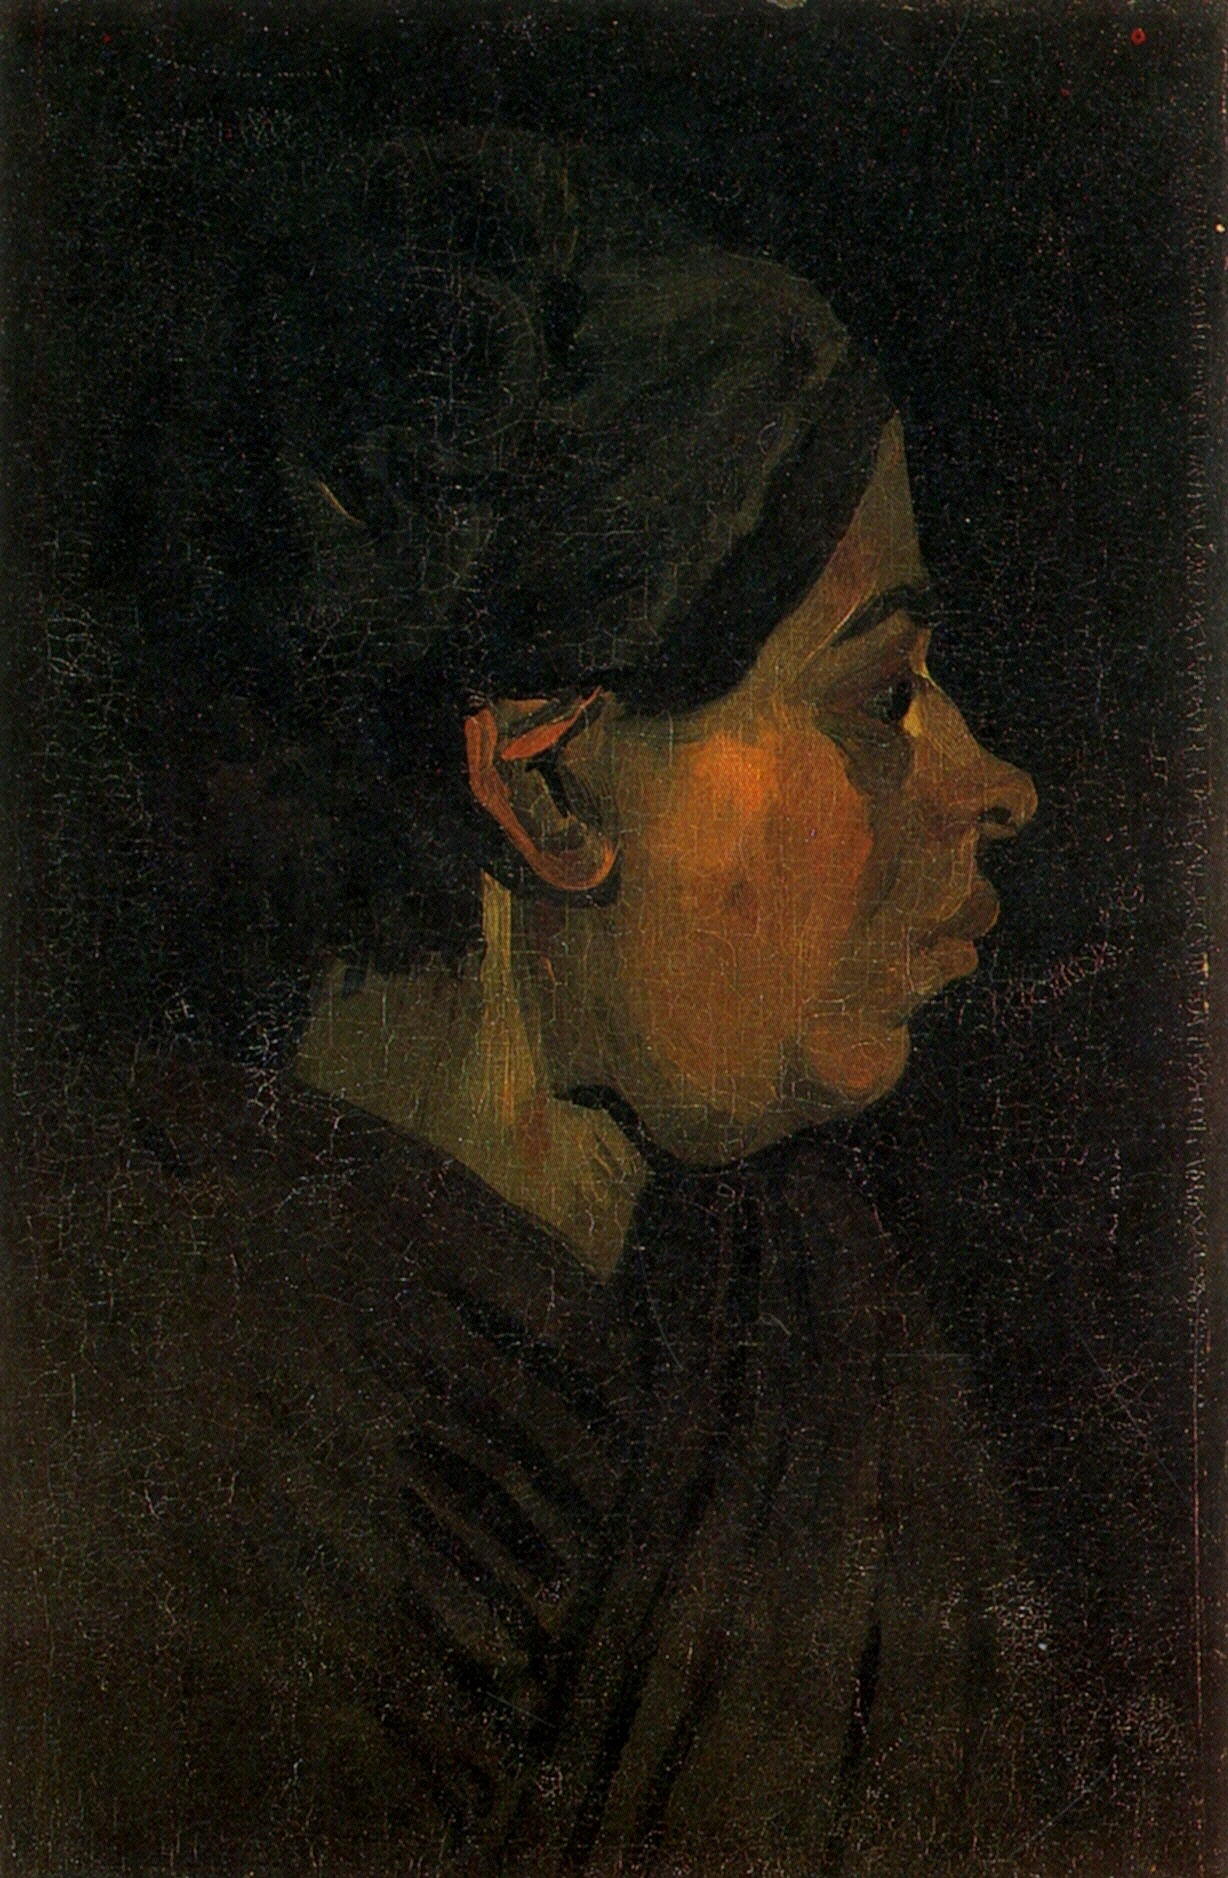 Head of a Peasant Woman with Dark Cap (F 135, JH 585) by Vincent van Gogh